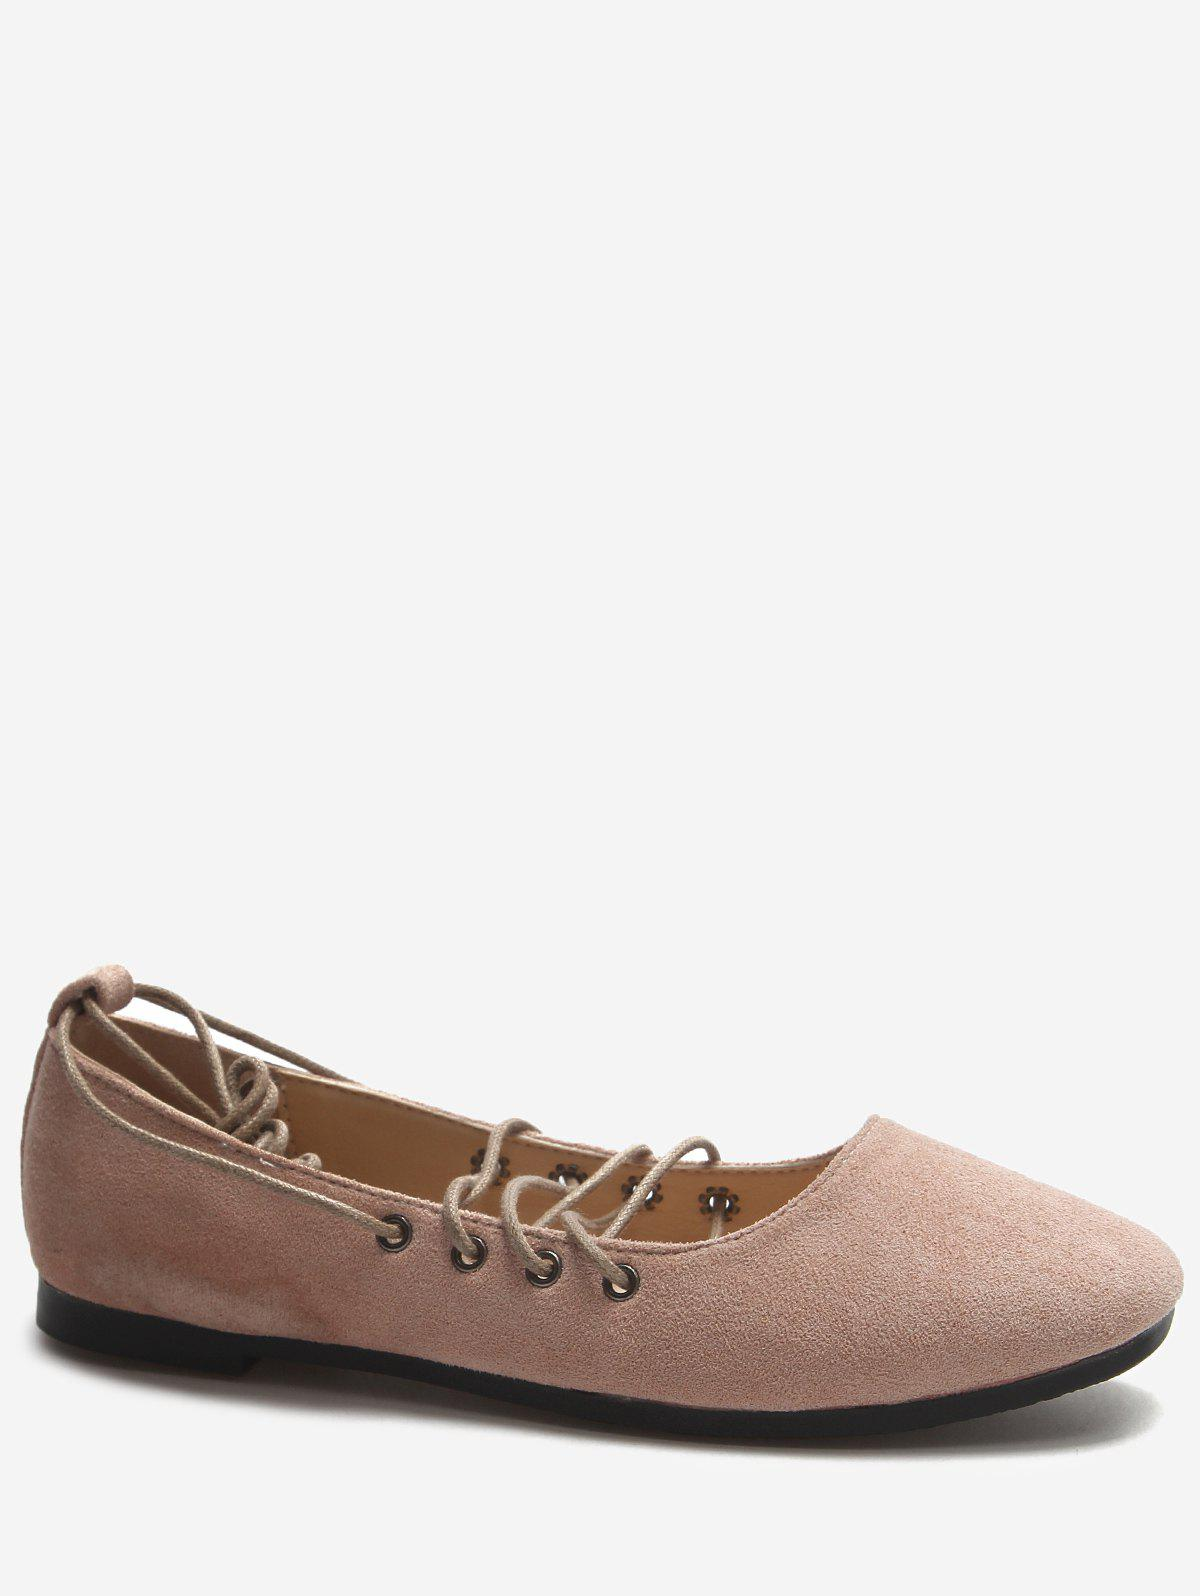 Crisscross Casual Lace Up Ballerina Flats - LIGHT PINK 38